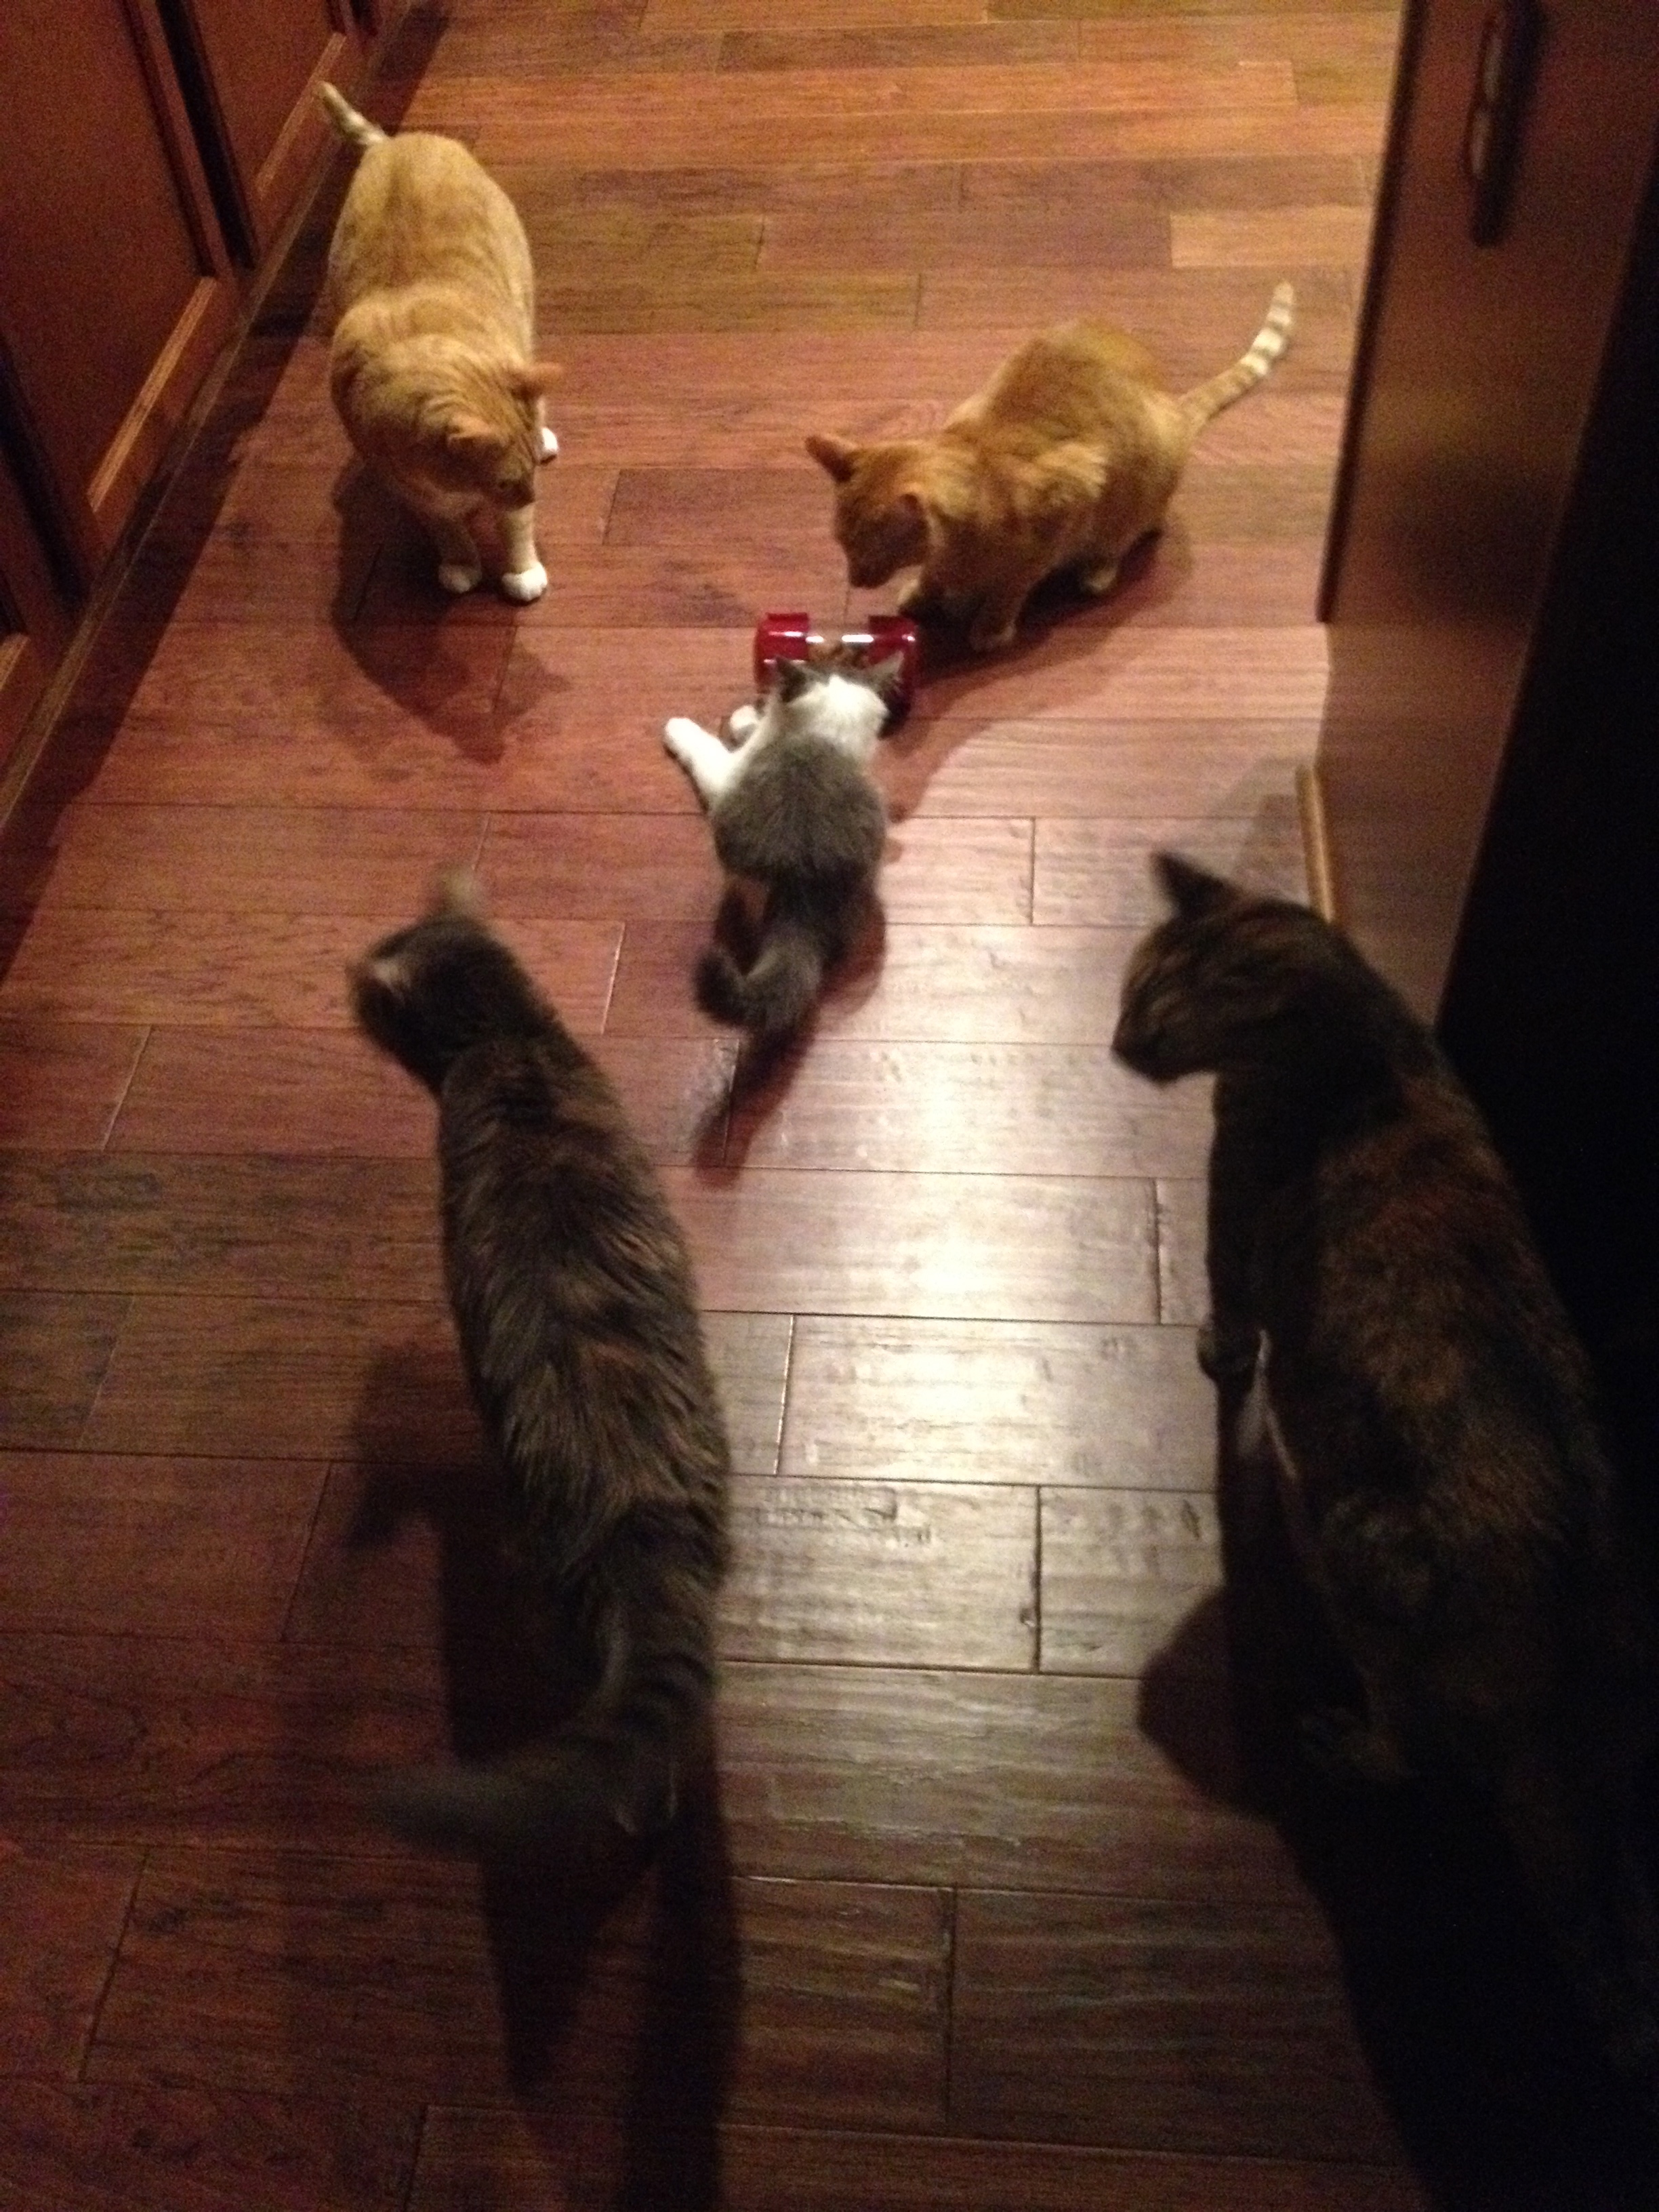 All 5 cats mingling over their new FF foraging toy.